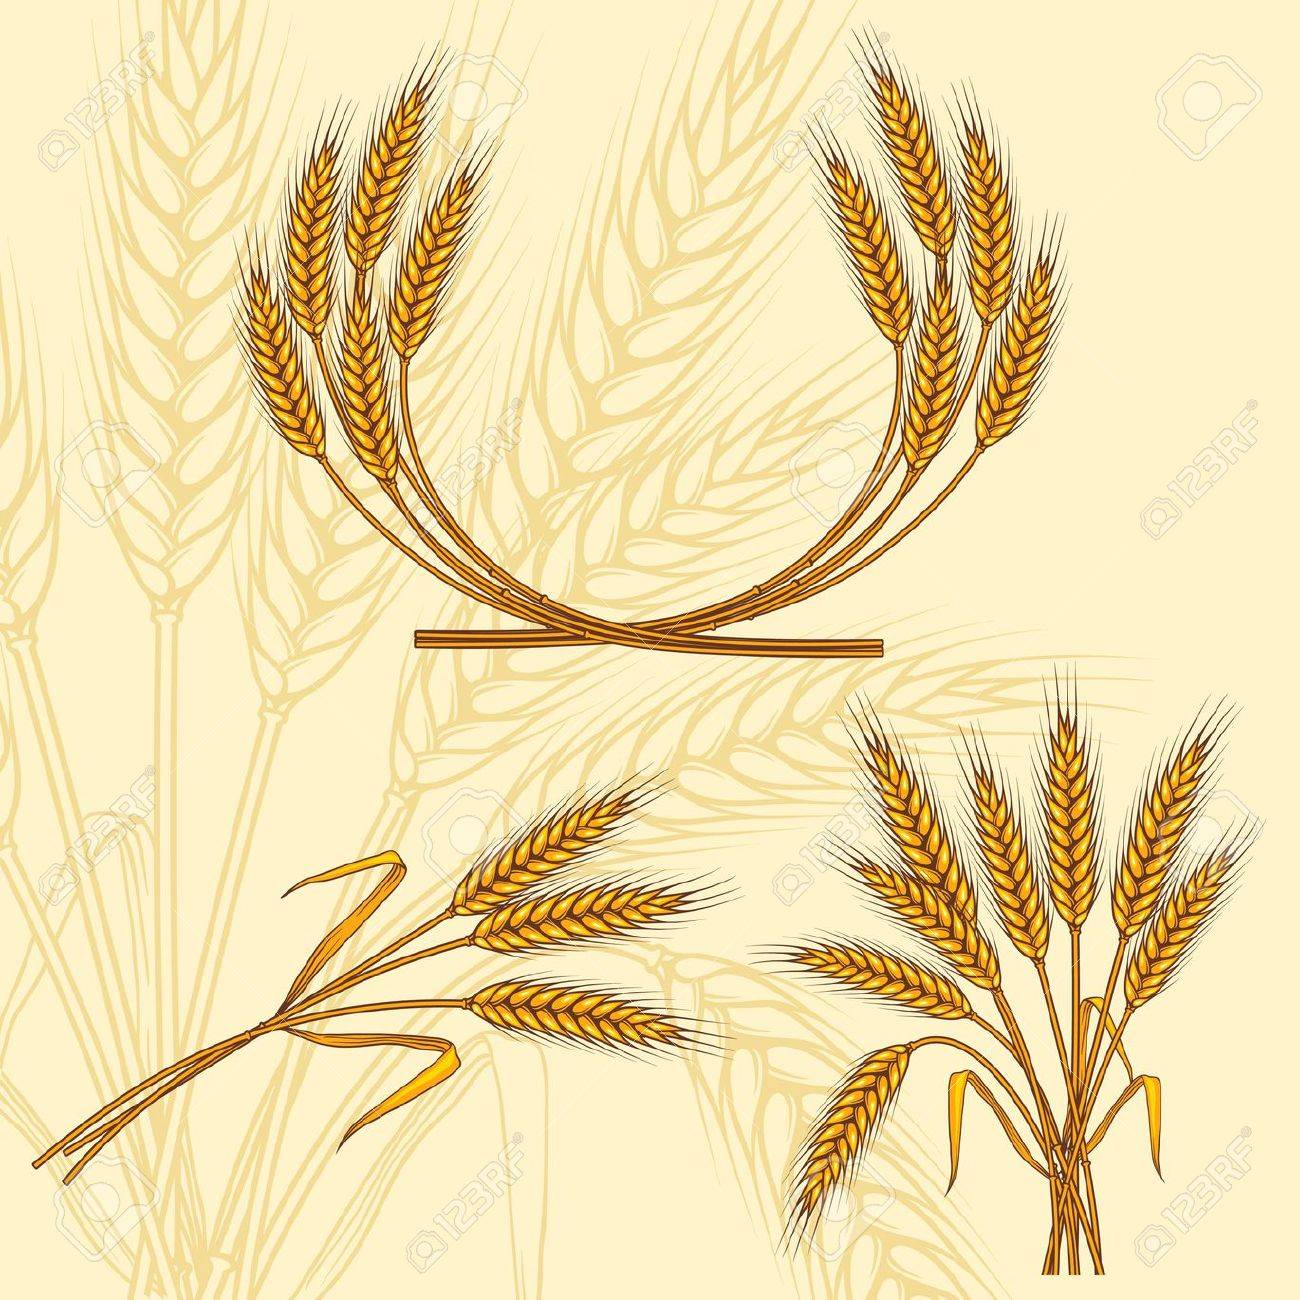 Background with ripe yellow wheat ears, vector illustration Stock Vector - 13288484